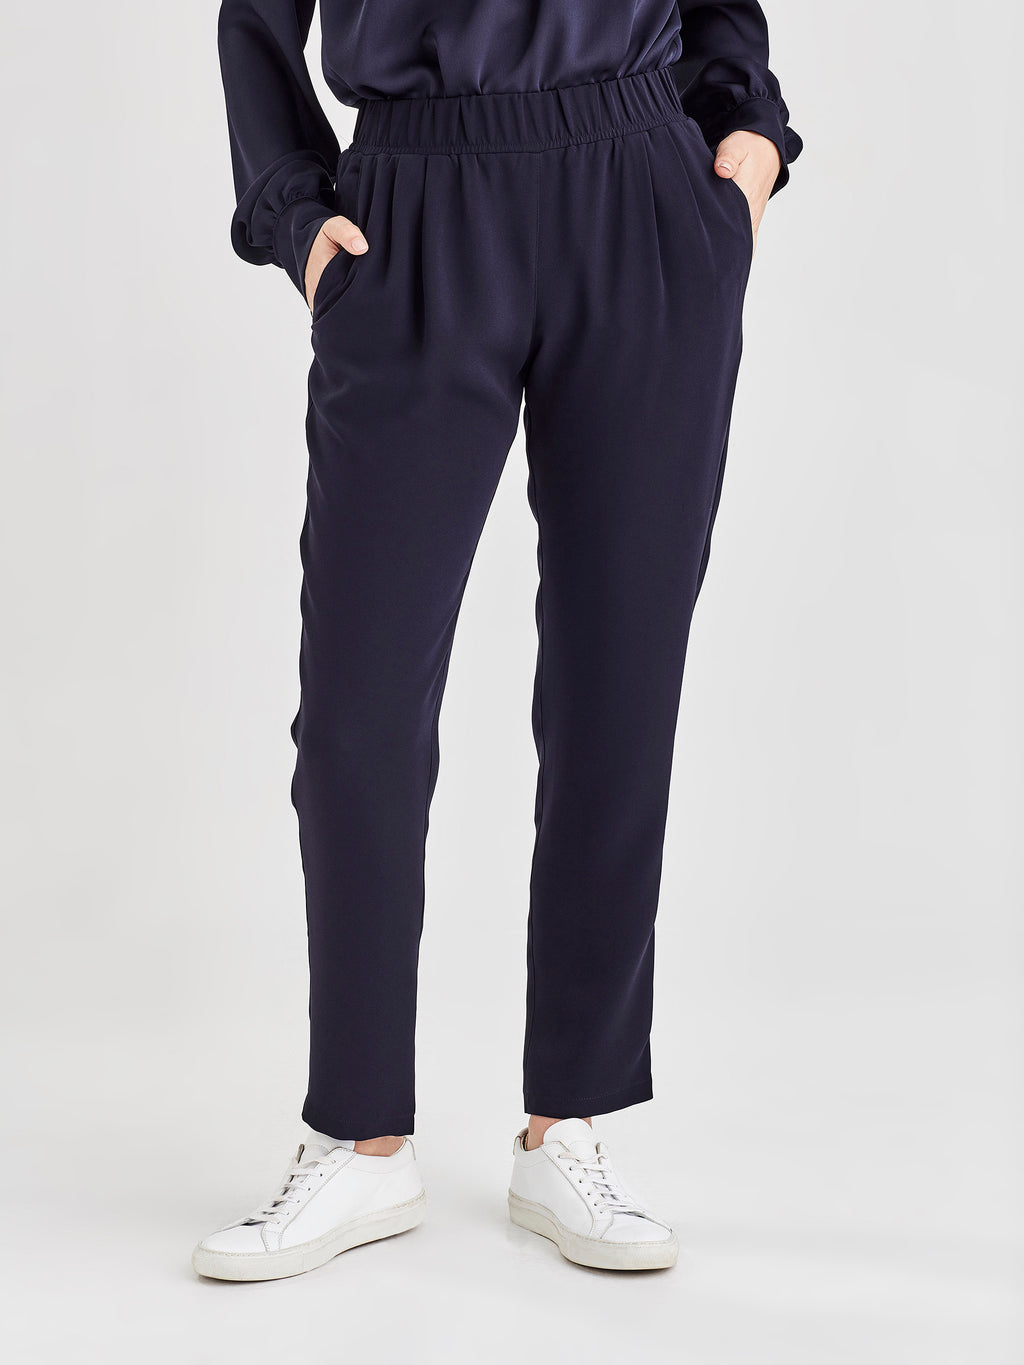 Malfoy Pant (Luxe Suiting) Navy